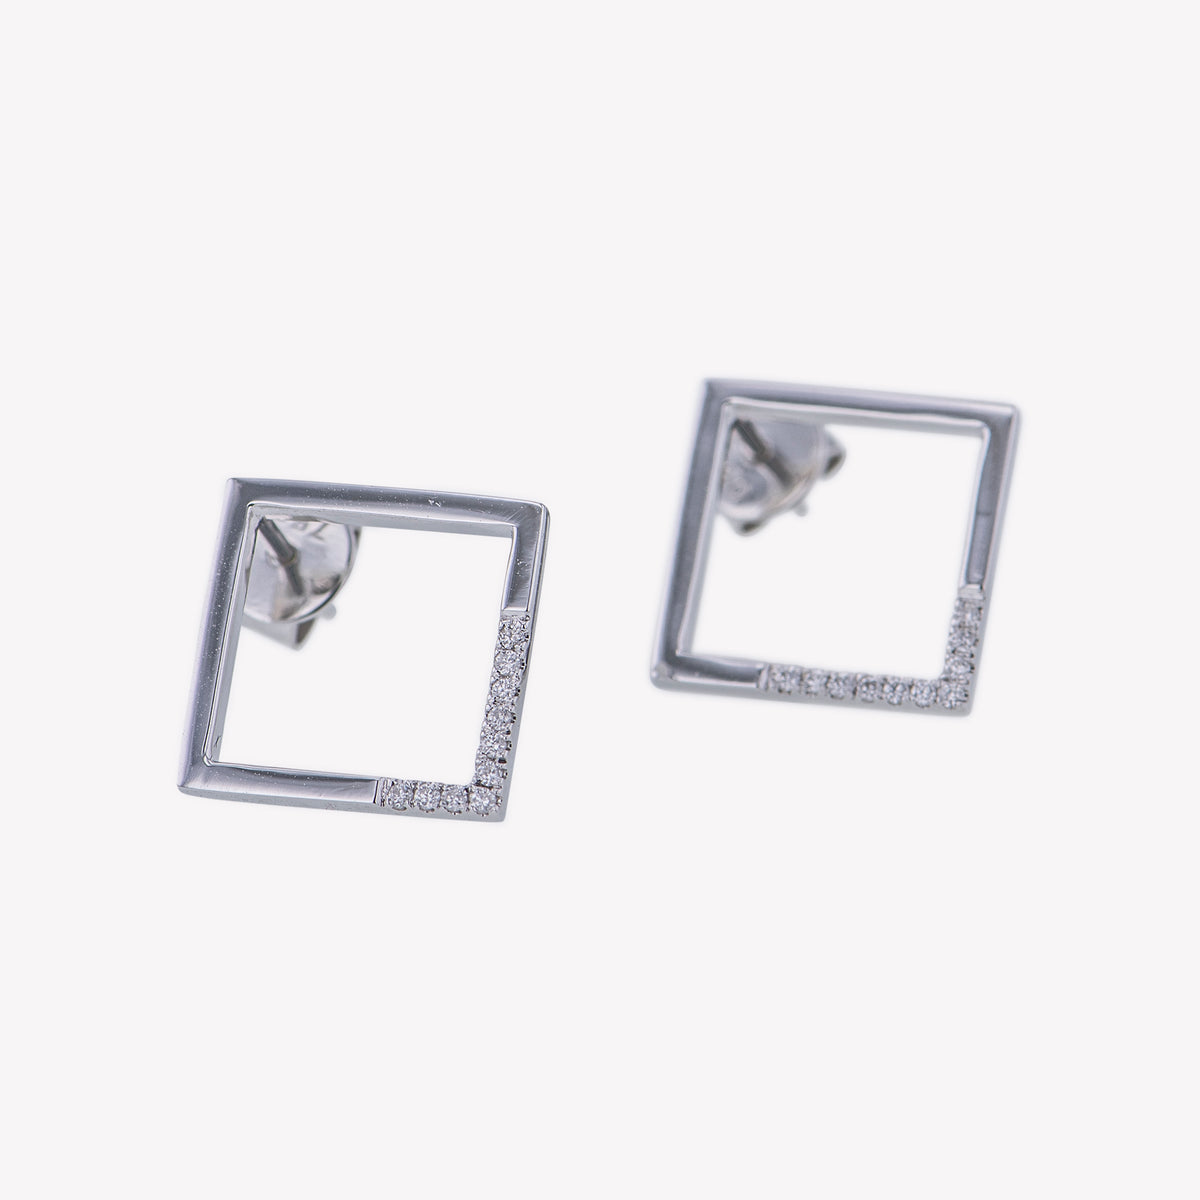 Square Earrings in White Gold